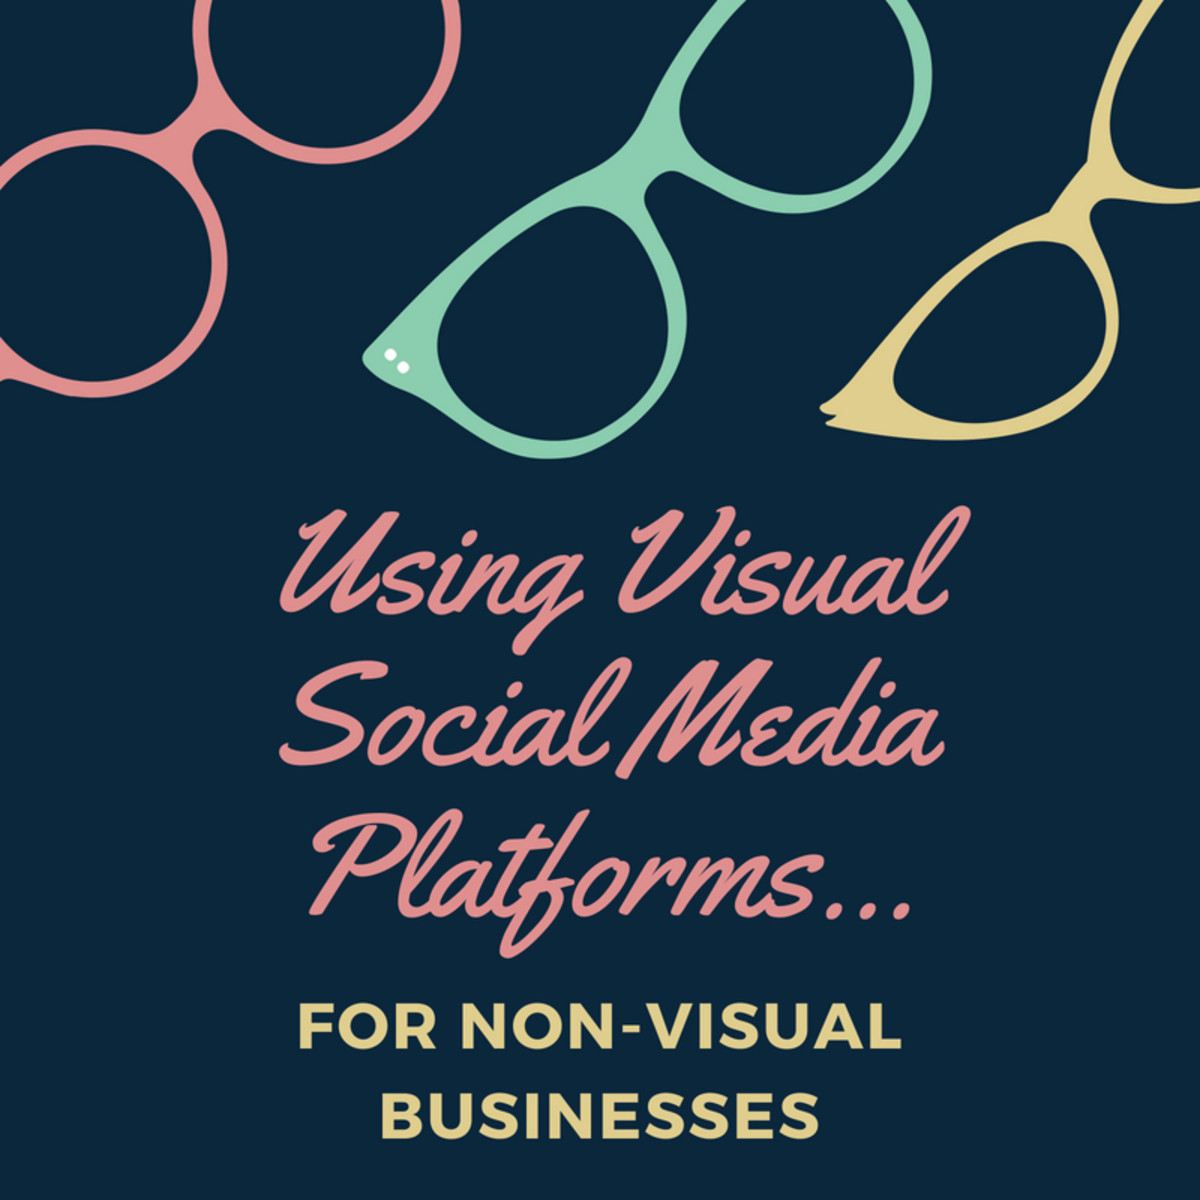 Using Visual Social Media Platforms for Non-Visual Businesses